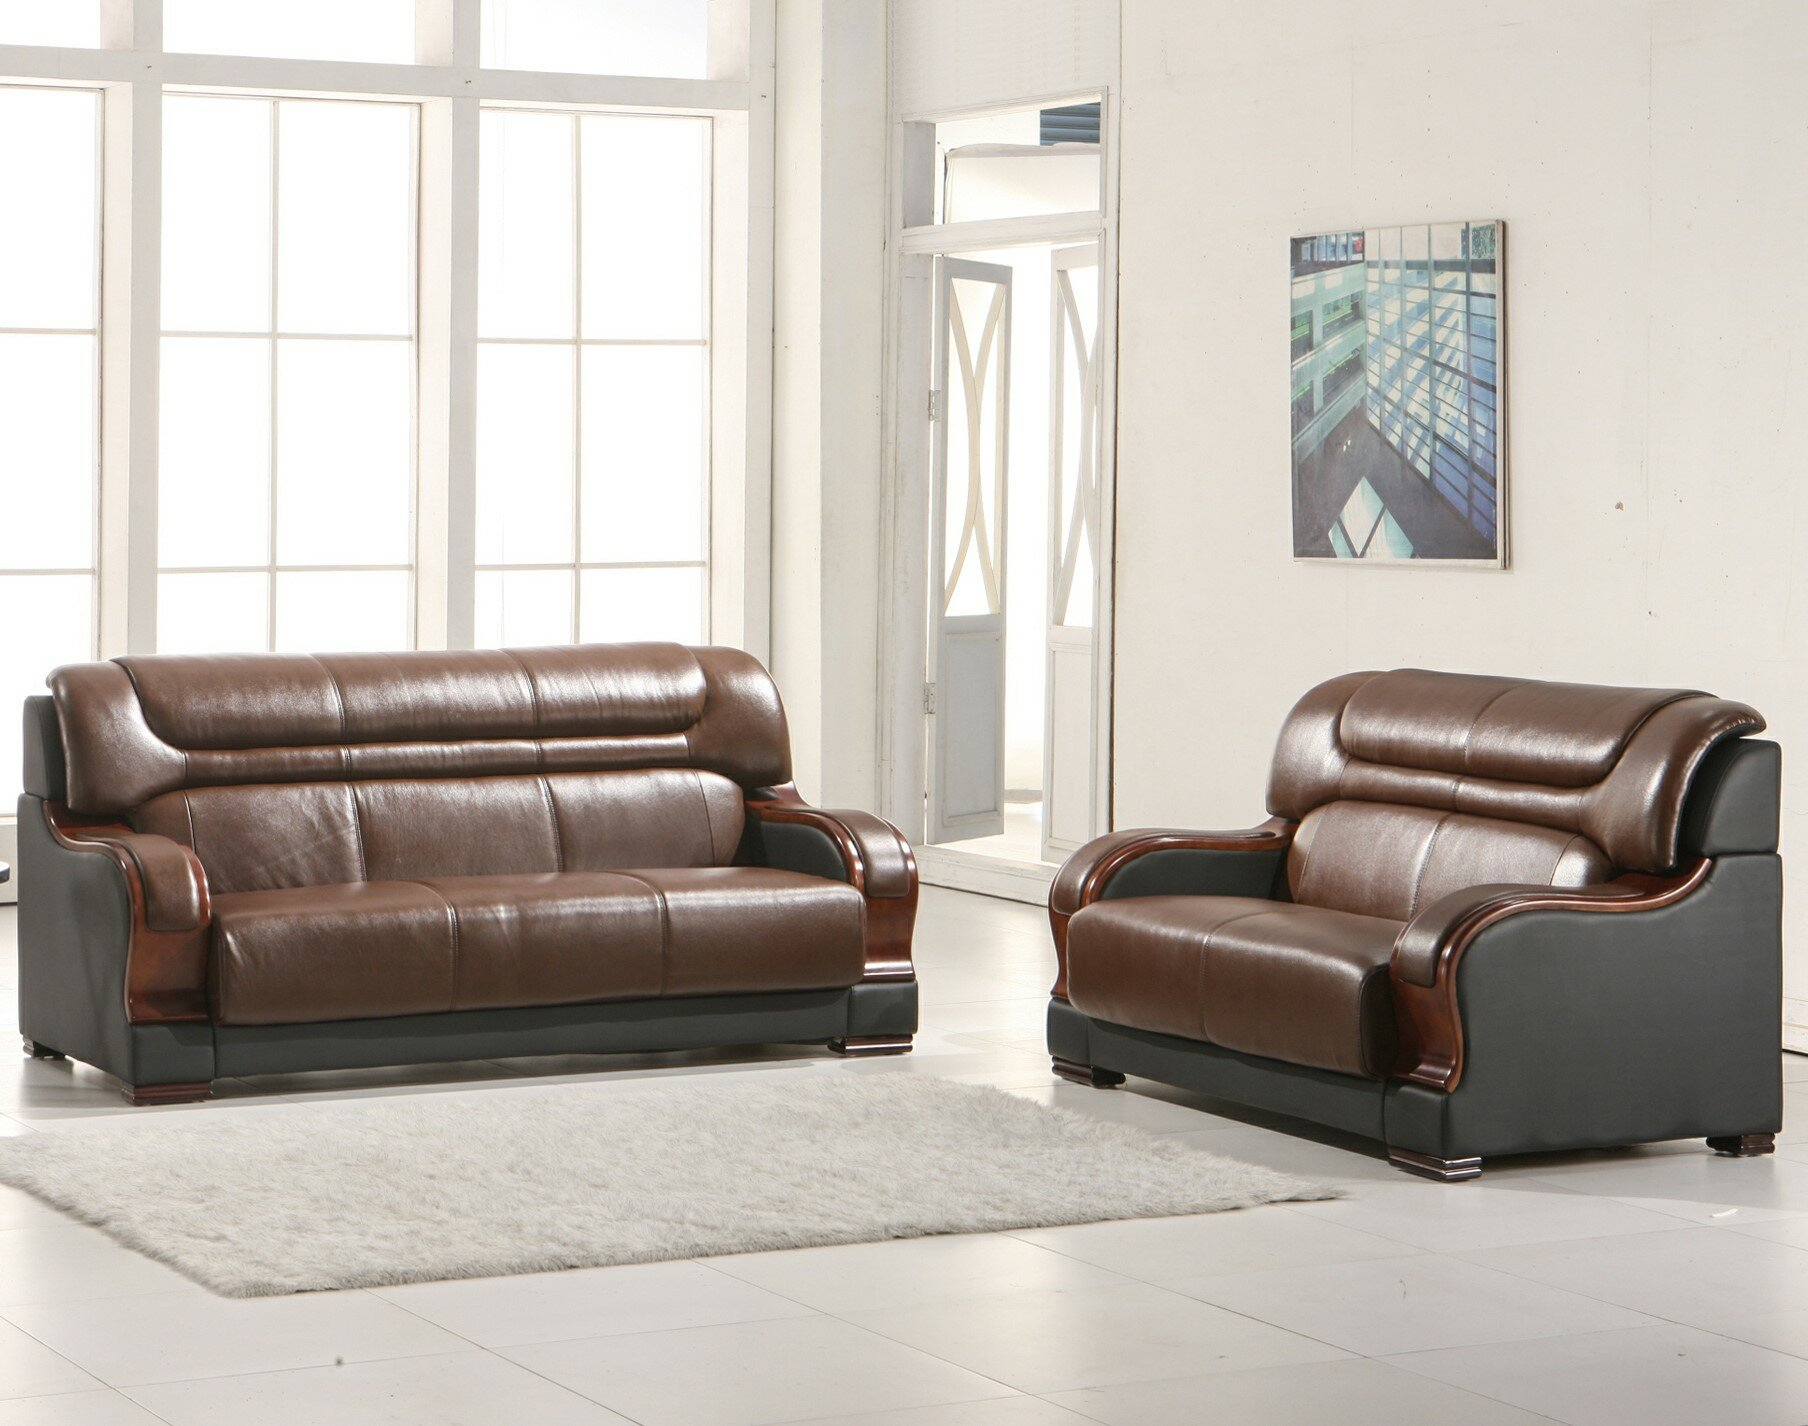 Murphree 2 Piece Leather Living Room Set